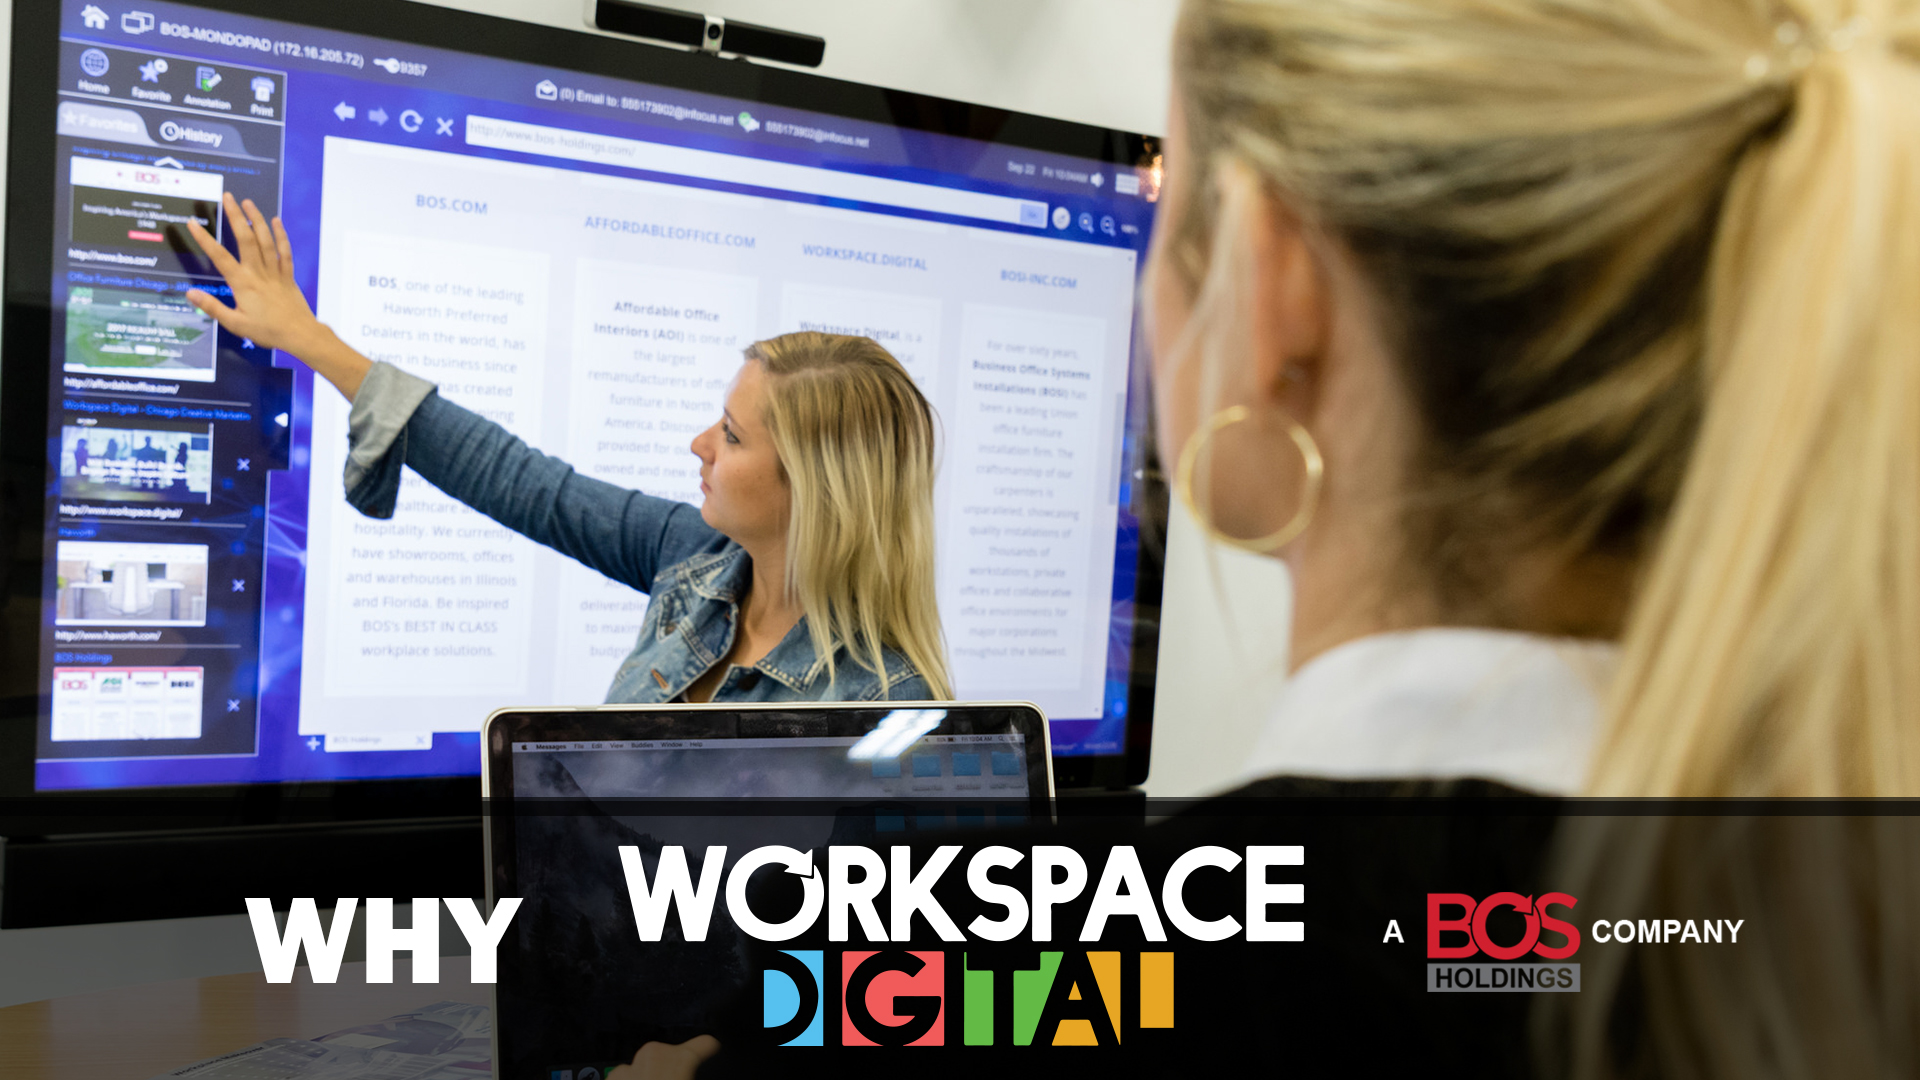 Why Workspace Digital Video